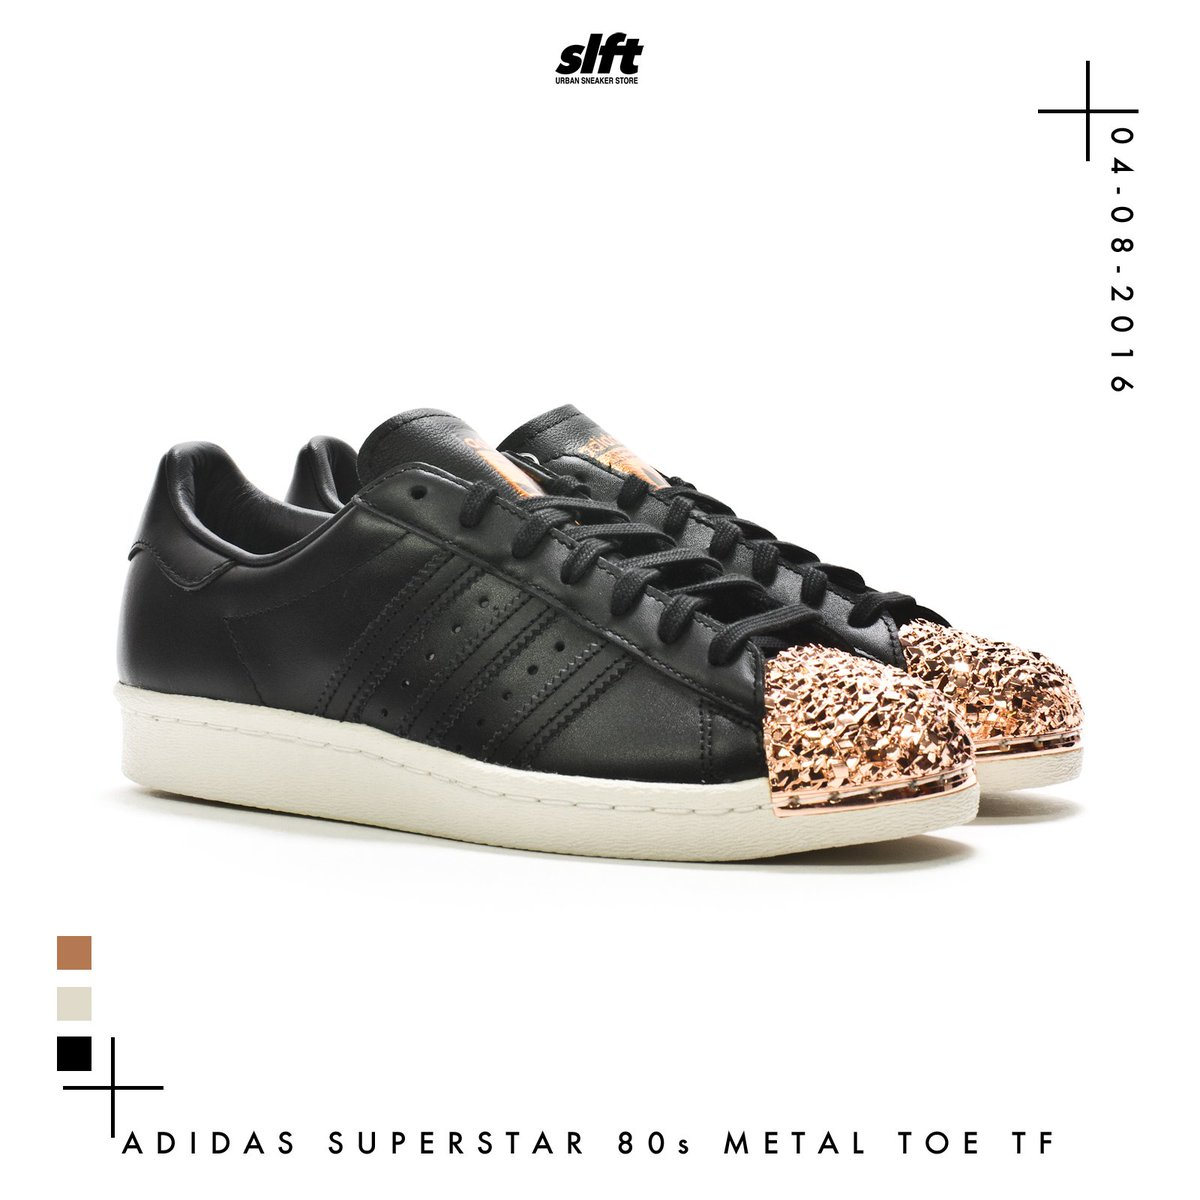 2016 Adidas Originals Superstar 80s Metal Toe Shoes For